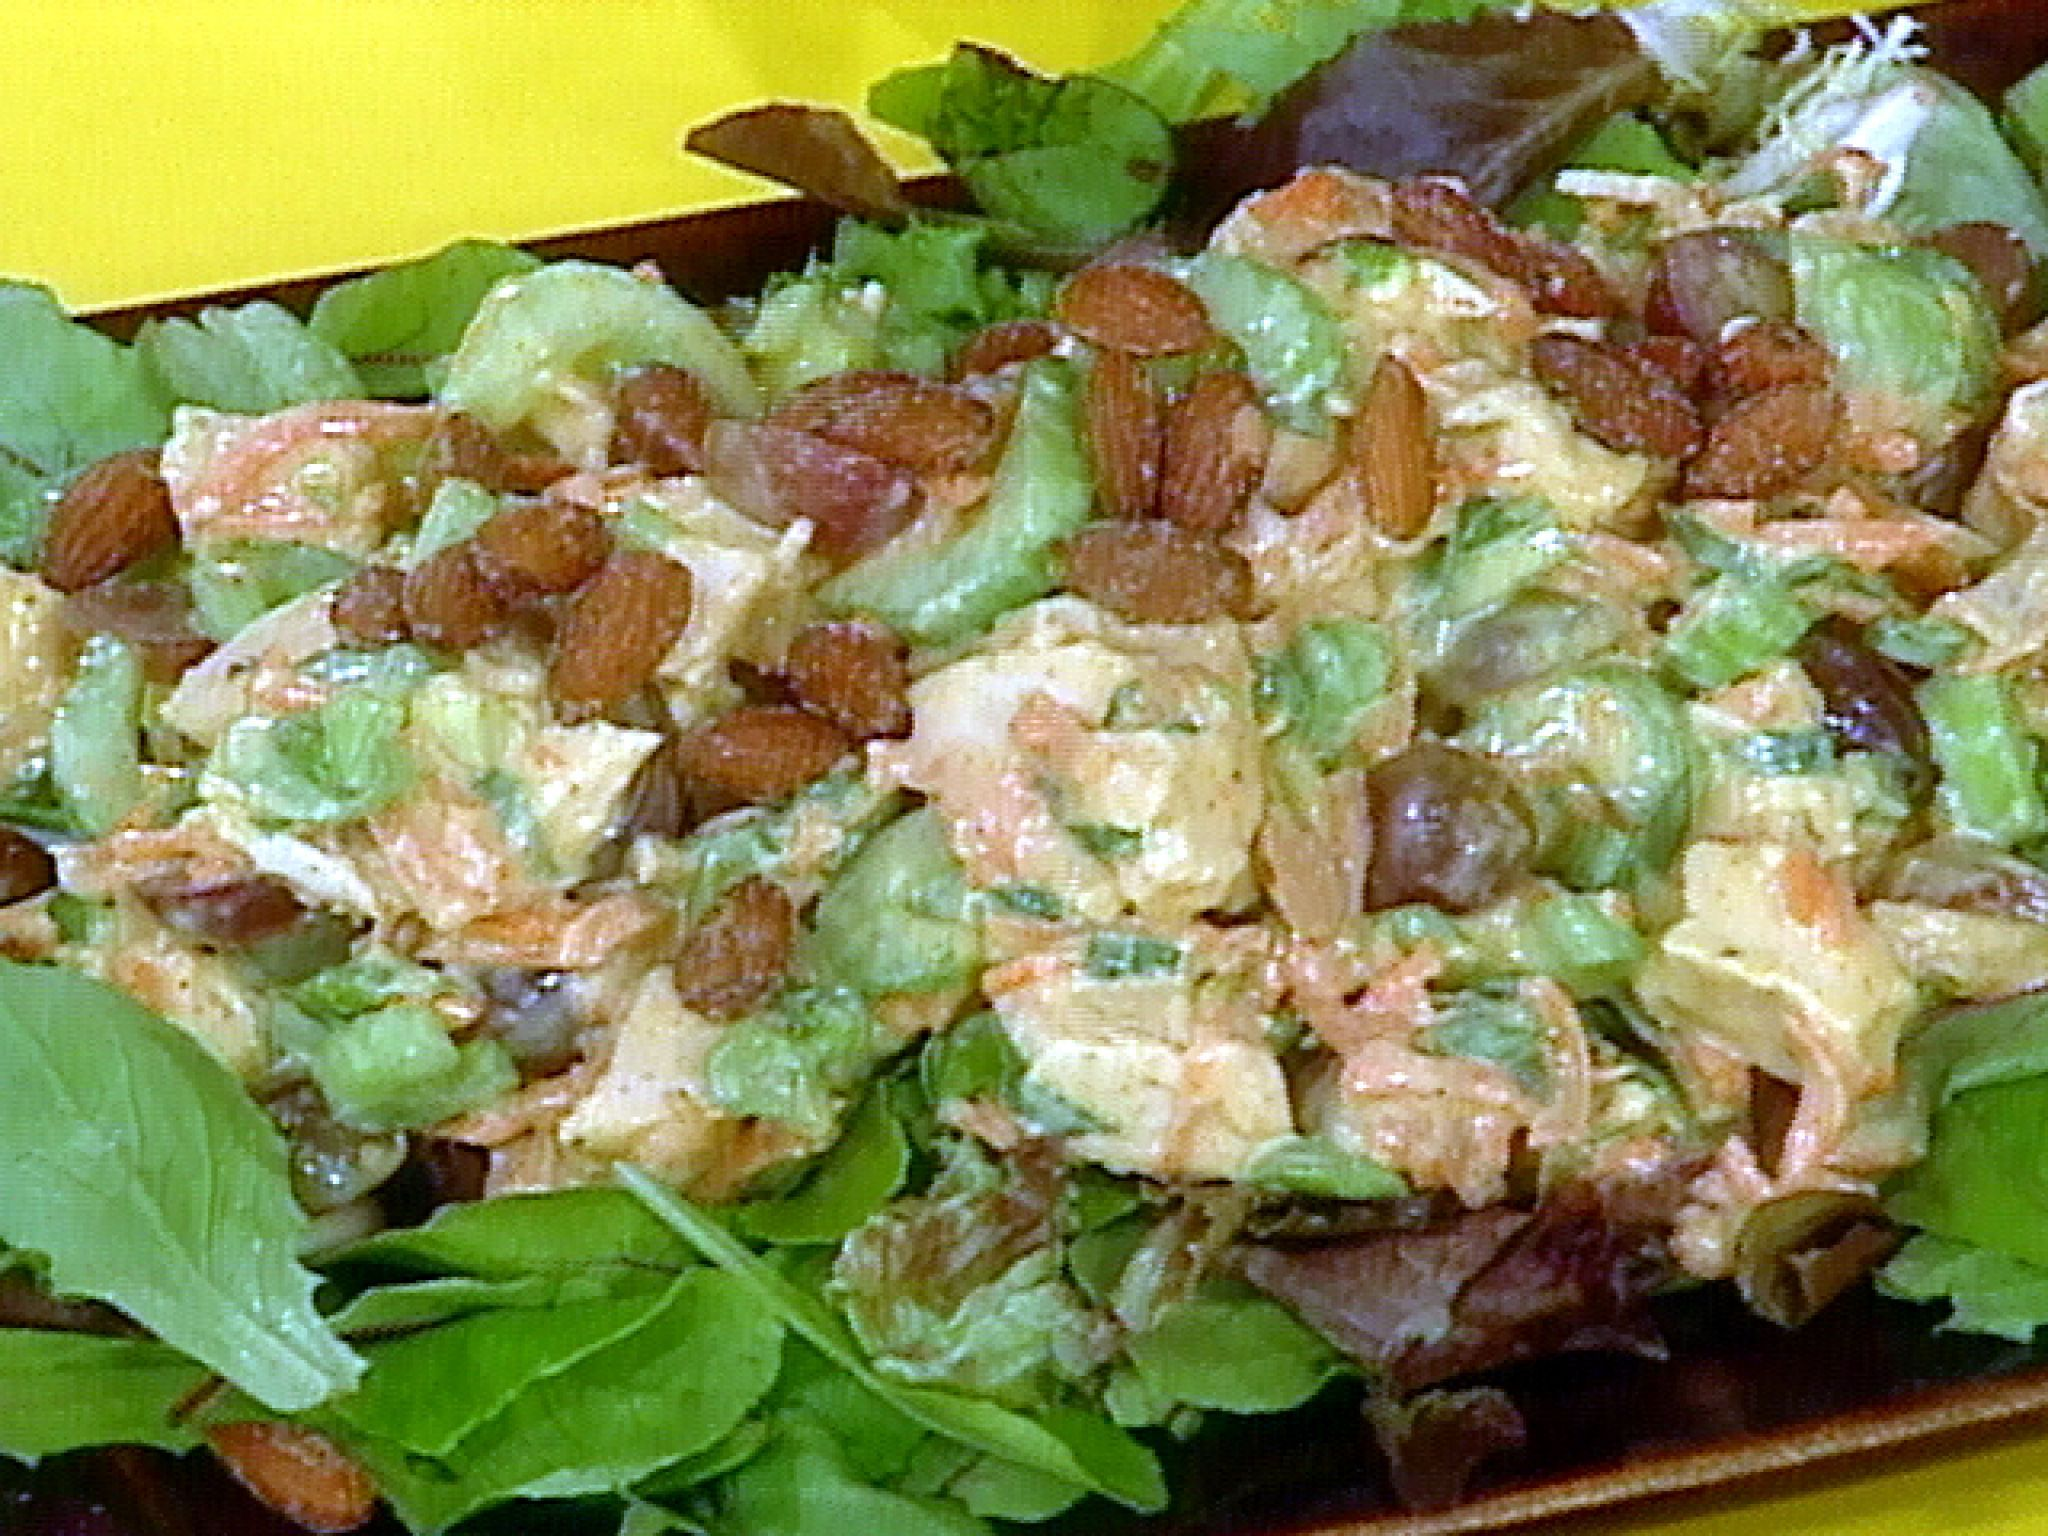 Curry in a hurry rotisserie chicken salad recipe pinterest curry in a hurry rotisserie chicken salad recipe pinterest rotisserie chicken salad curry and salad forumfinder Image collections